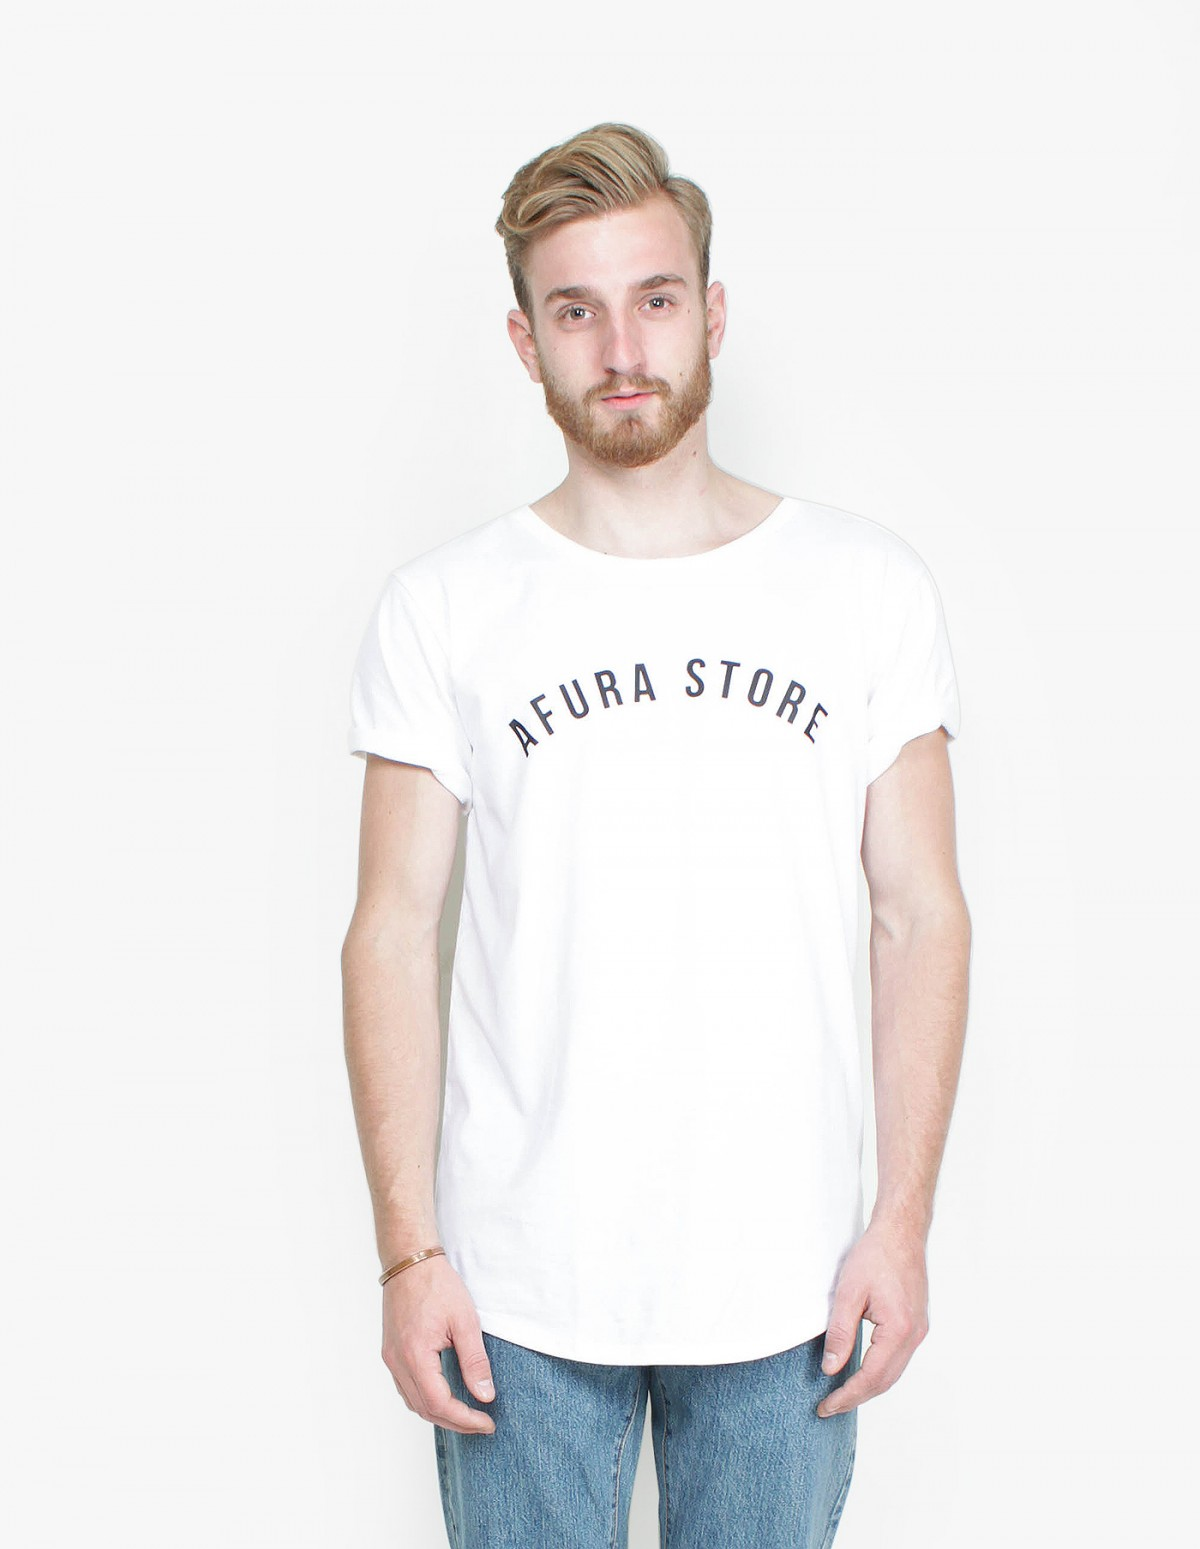 The 'Afura Store' Basic T-Shirt in White